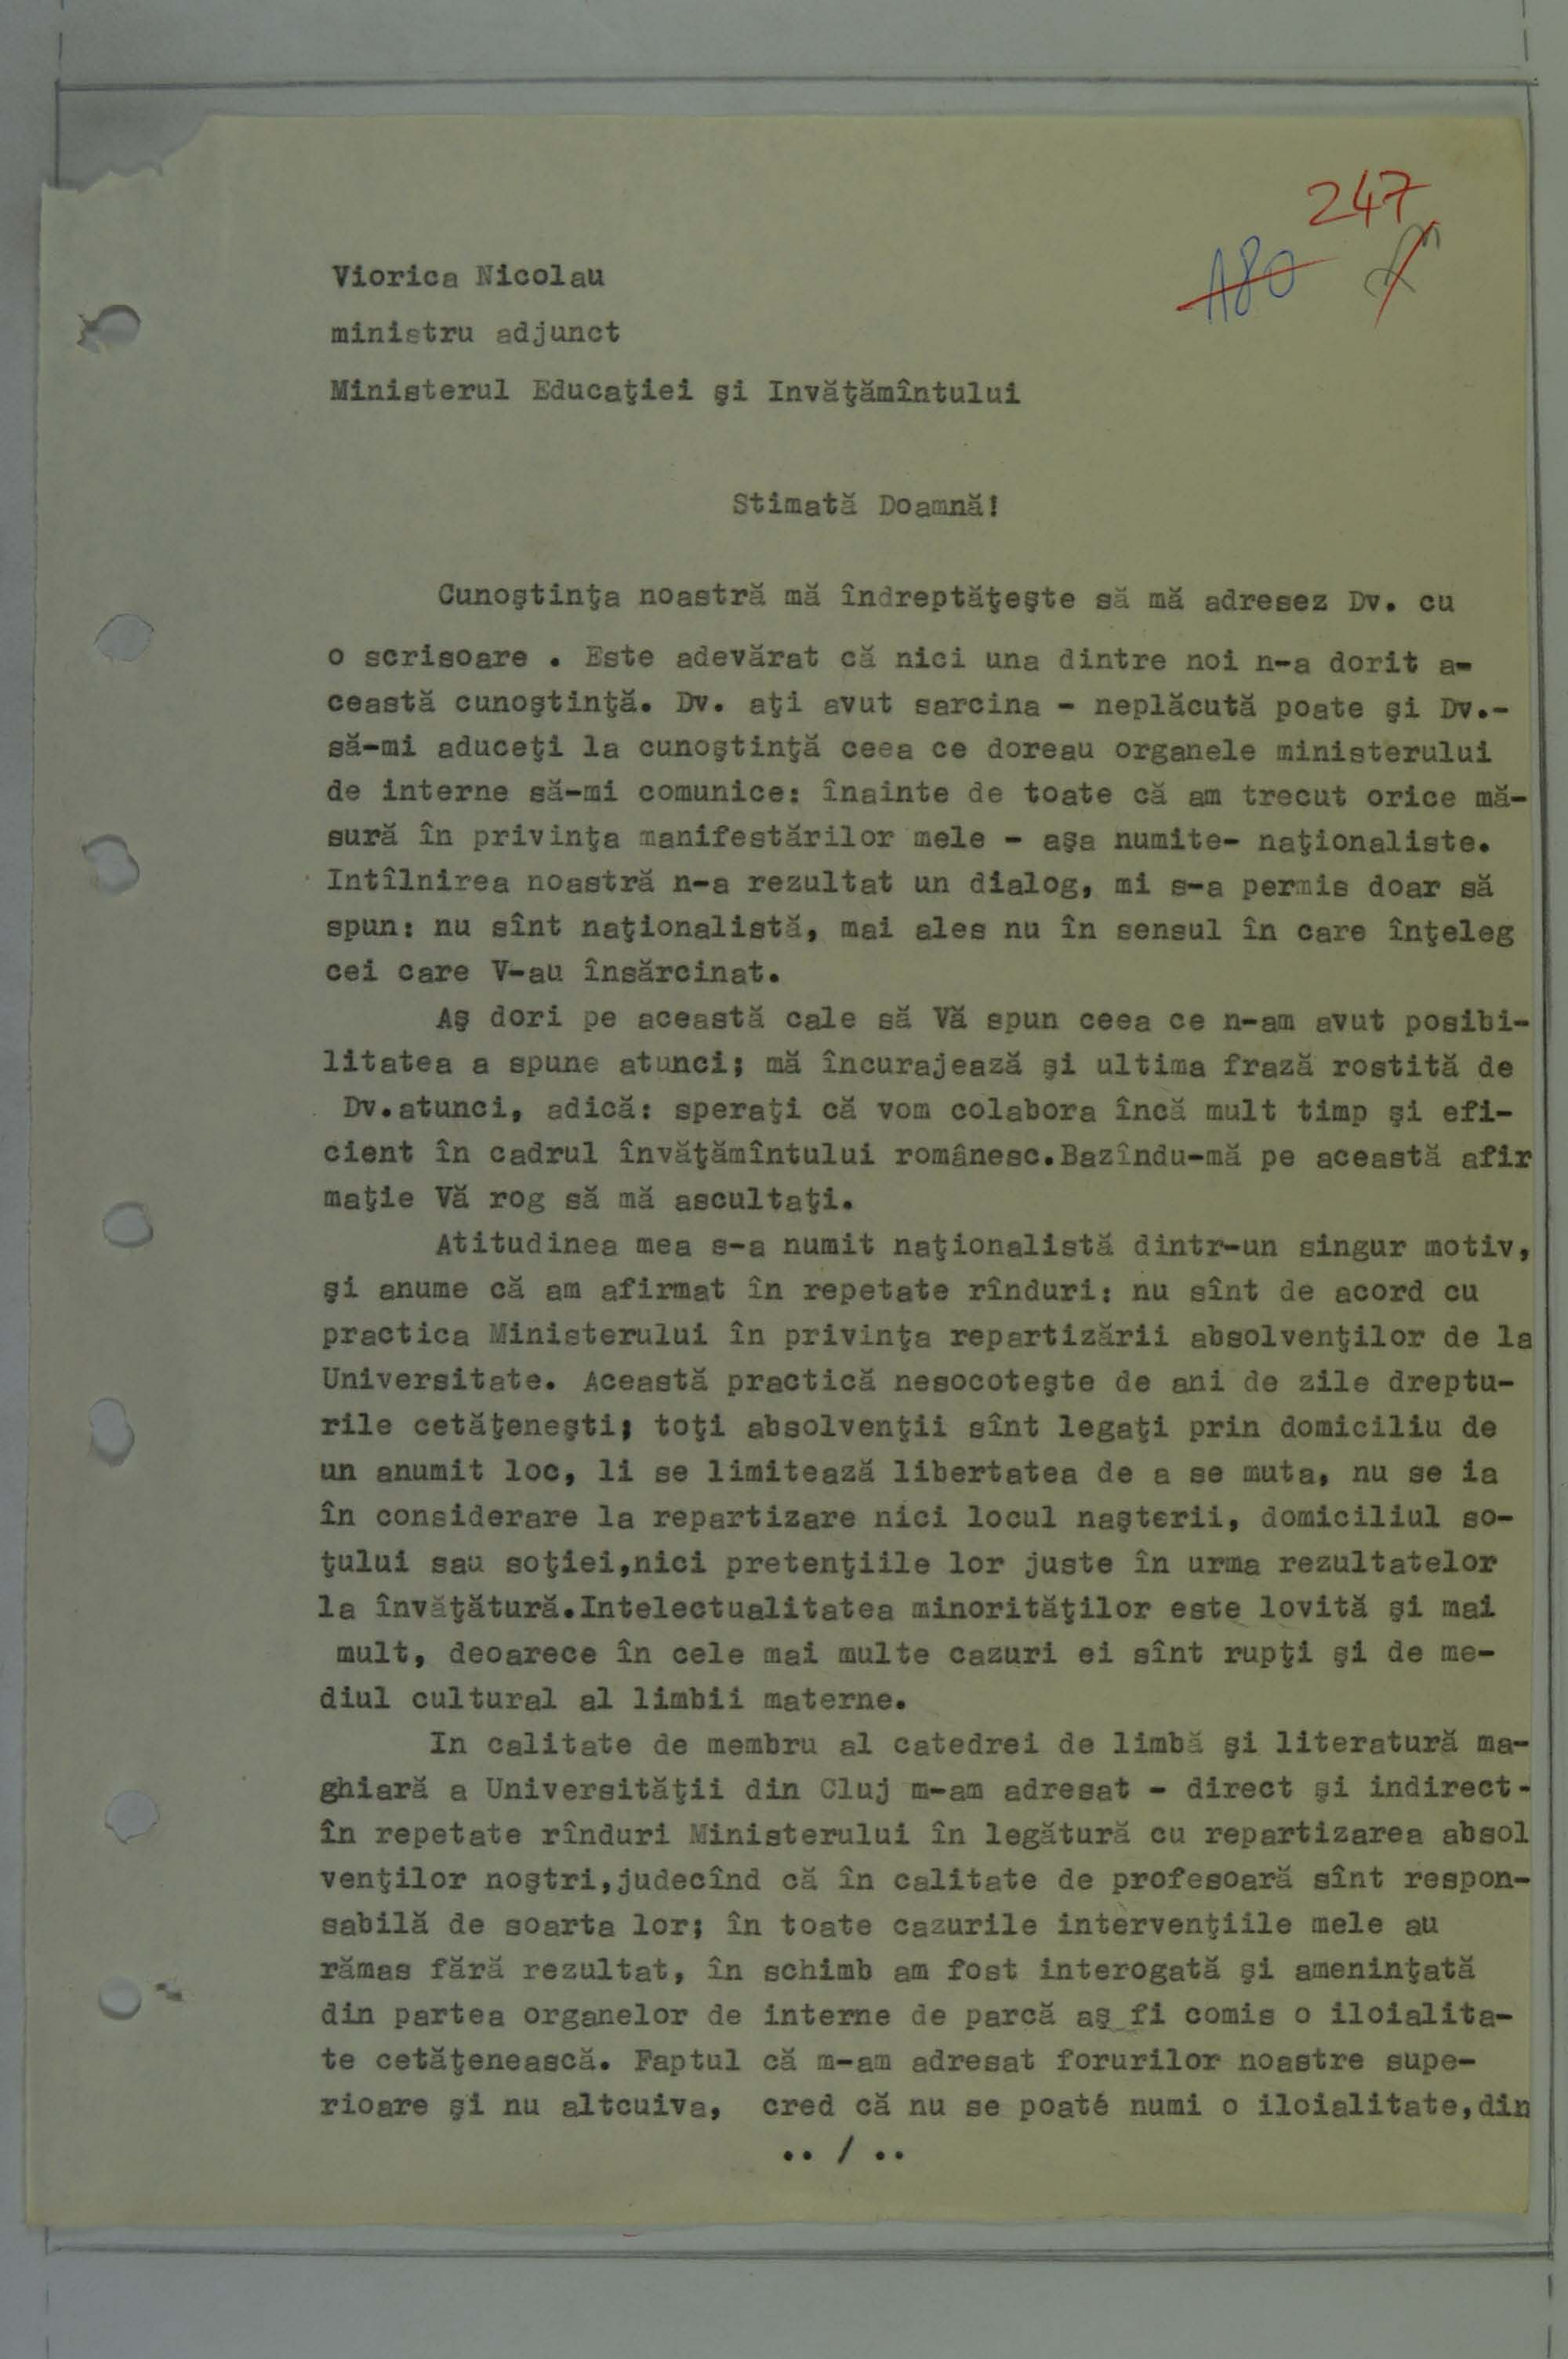 The transcript drafted by the Securitate of the Memorandum sent by Gyimesi to the Ministry of Education in 1988